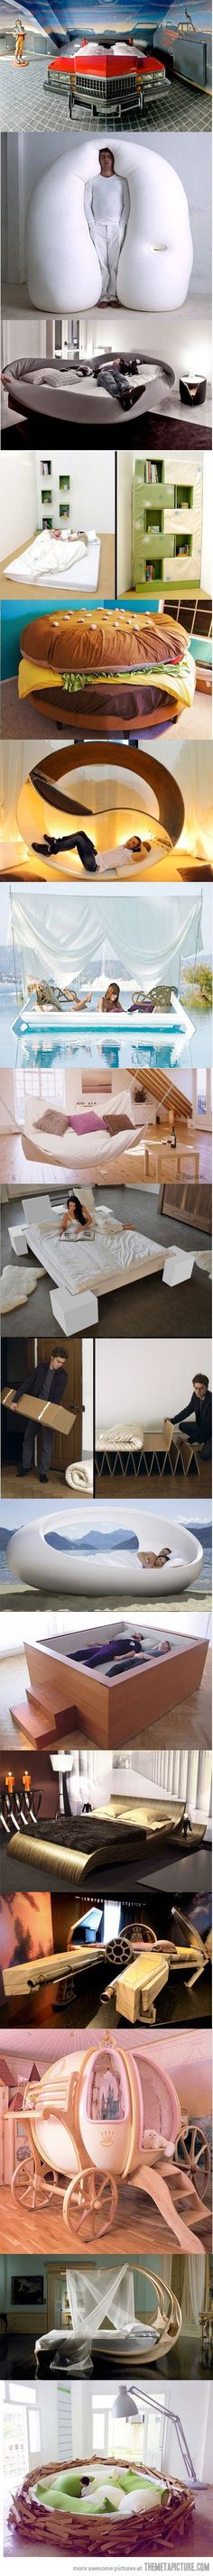 awesome beds! These all look comfy but how amazing is the second one! Ultimate comfort!